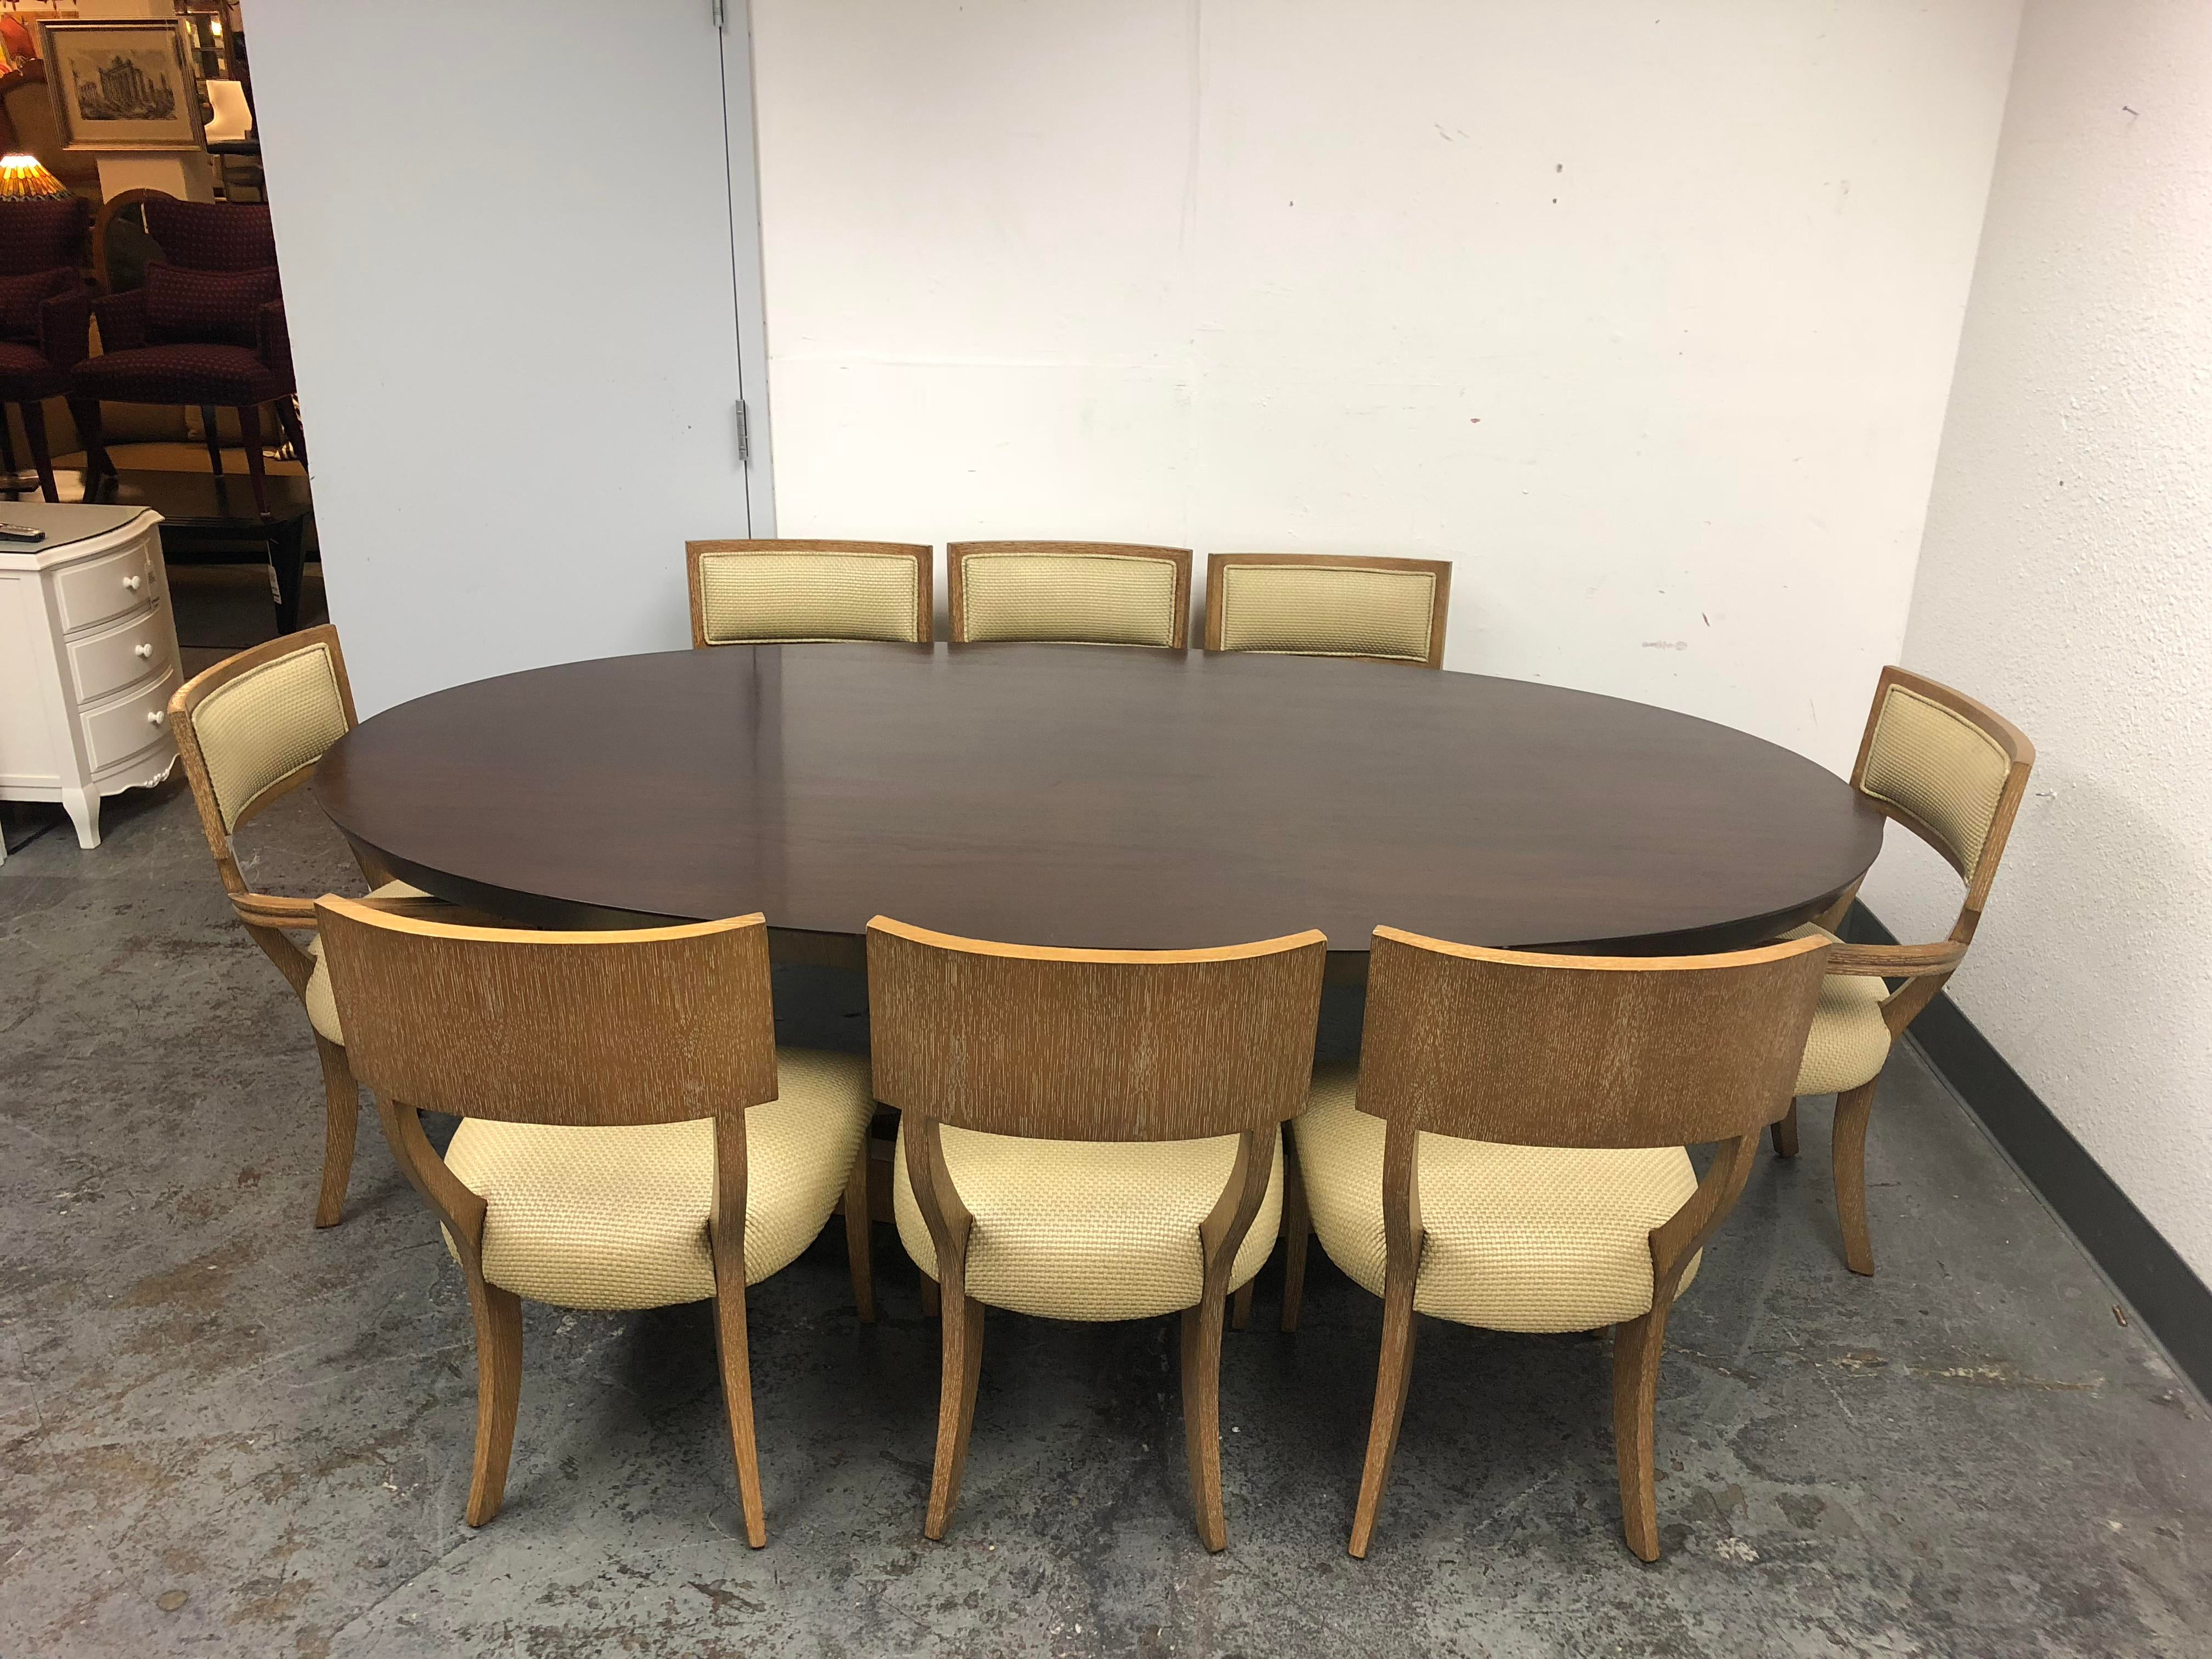 A Beautiful Dining Set By Michael Berman Limited. A Oval Mansfield Dining  Table In A